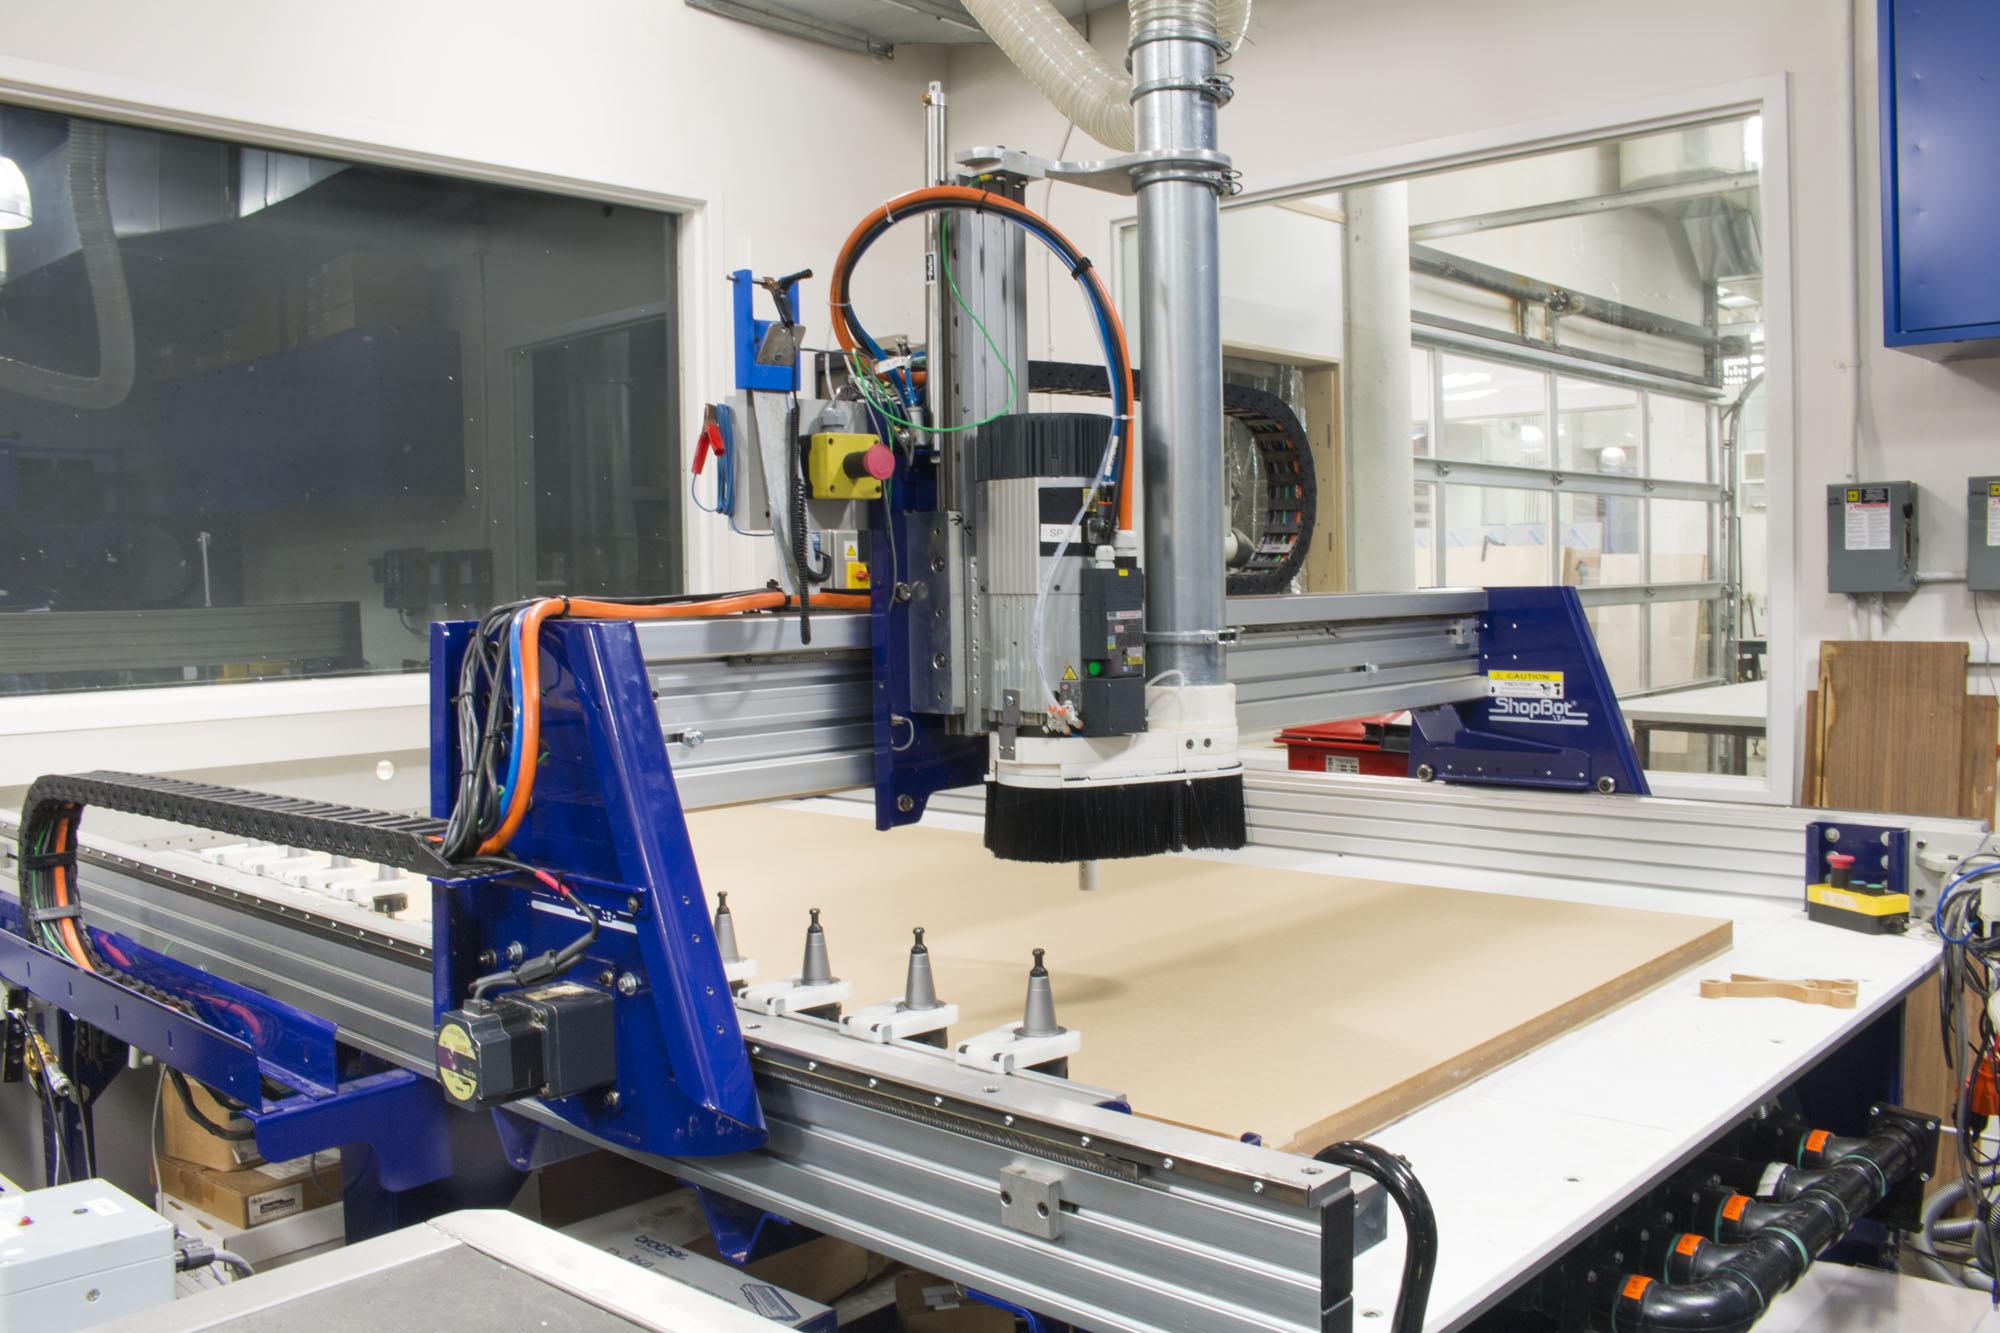 A view of the Shopbot CNC milling machine preparing to carve a sheet of acryllic.